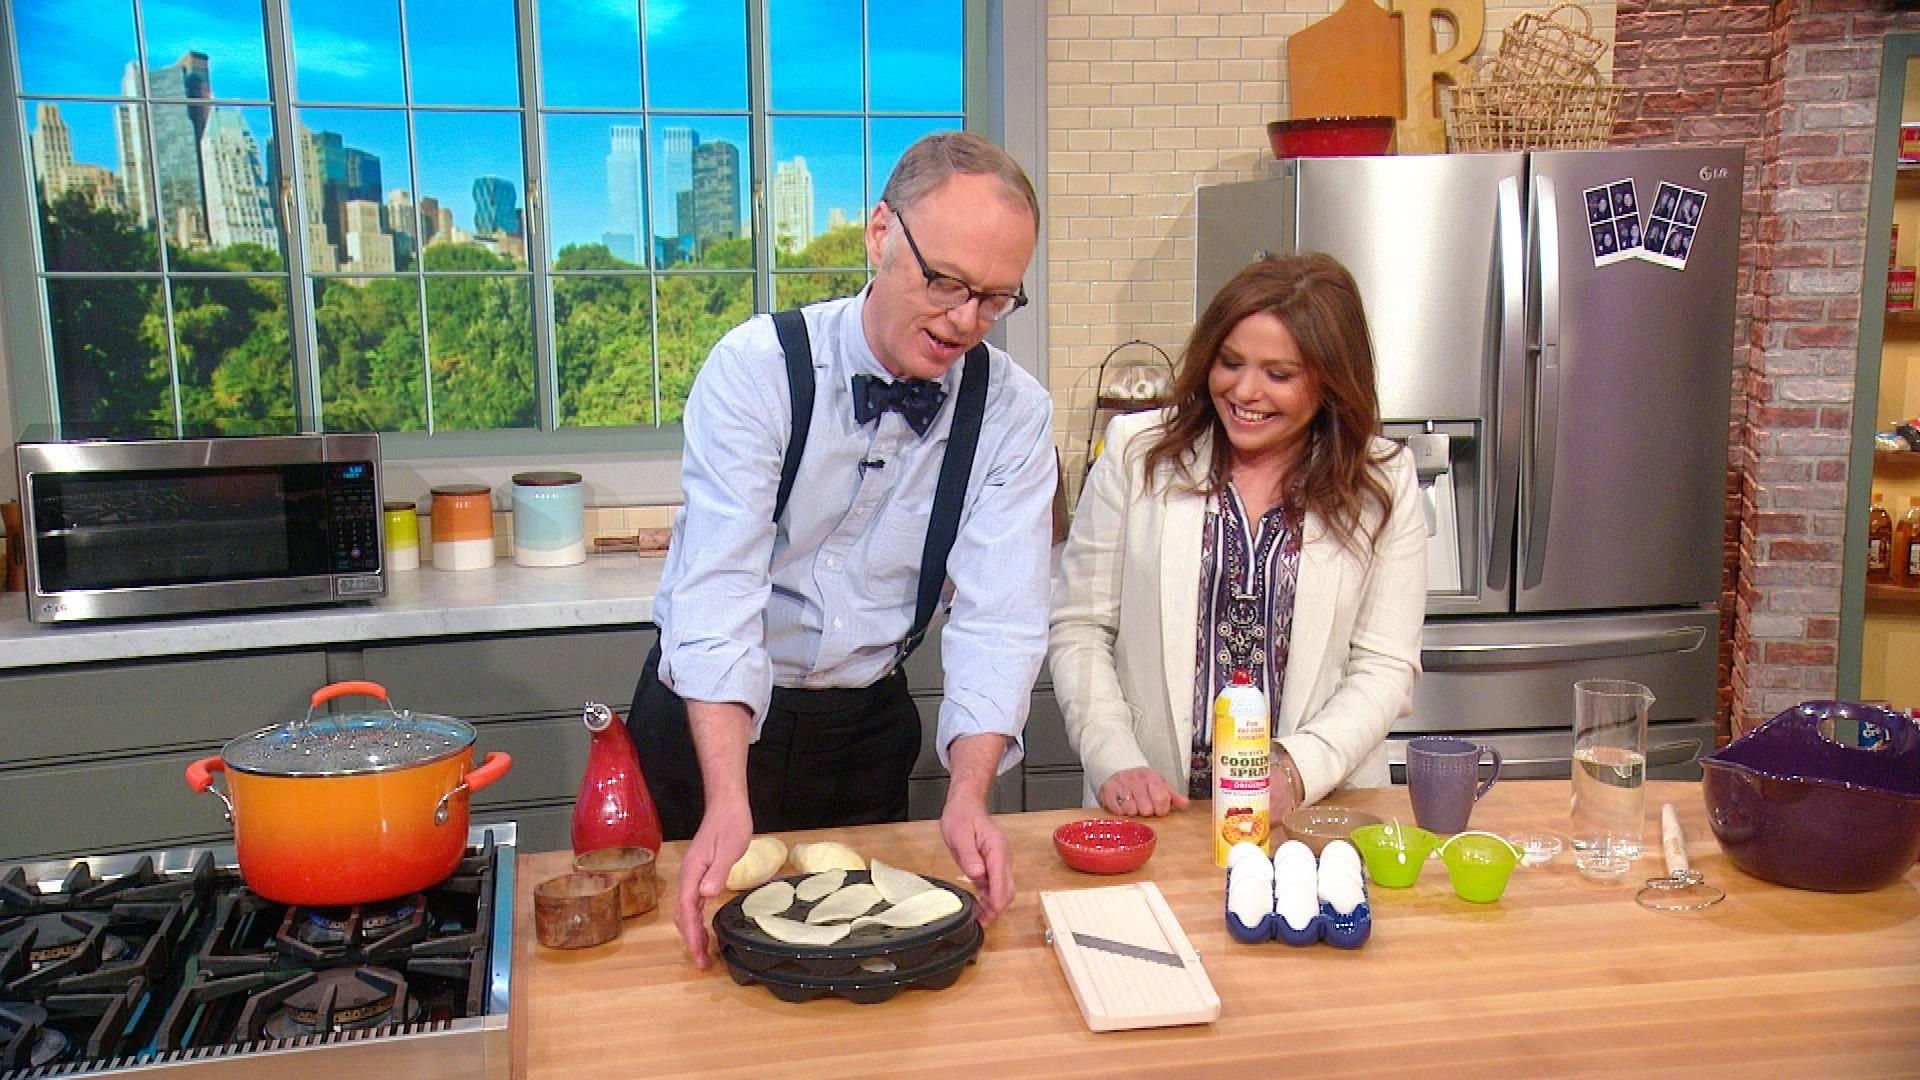 A Gadget That You Can Use To Make Fat Free Chips In Your Microwave Rachael Ray Show